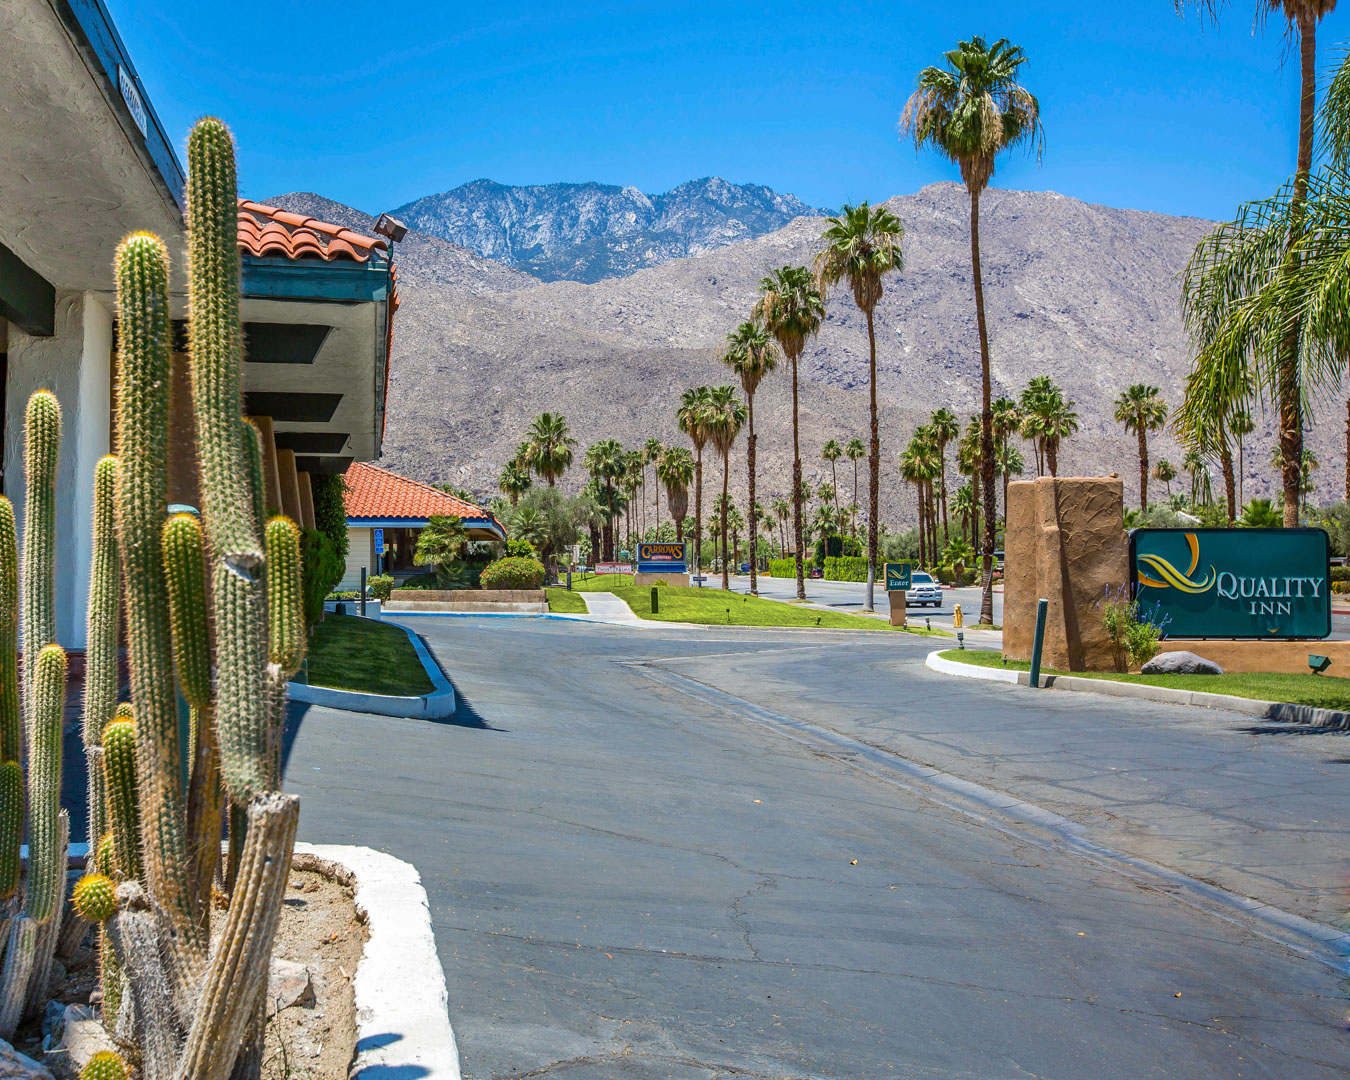 Pet Friendly Hotels In Palm Springs Ca Area